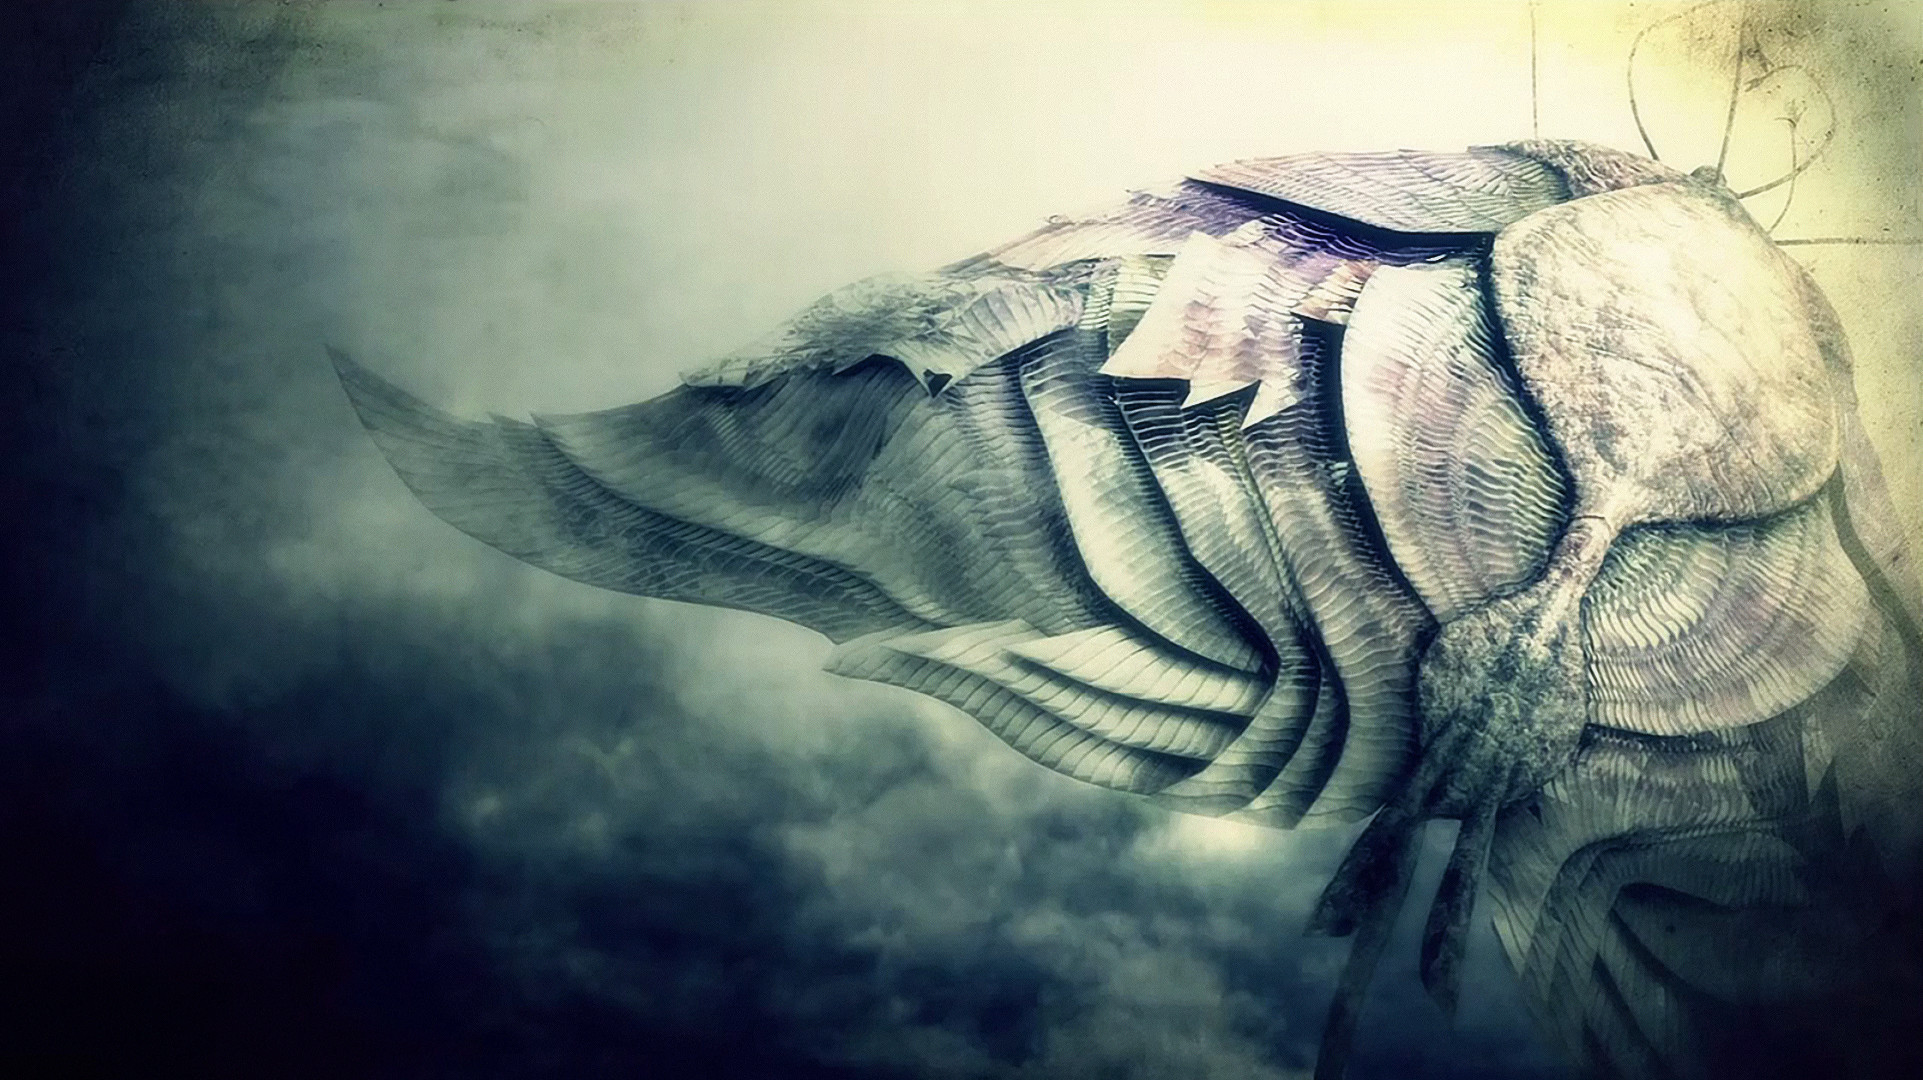 Res: 1923x1080, Video Game - Demon's Souls Video Game Wallpaper